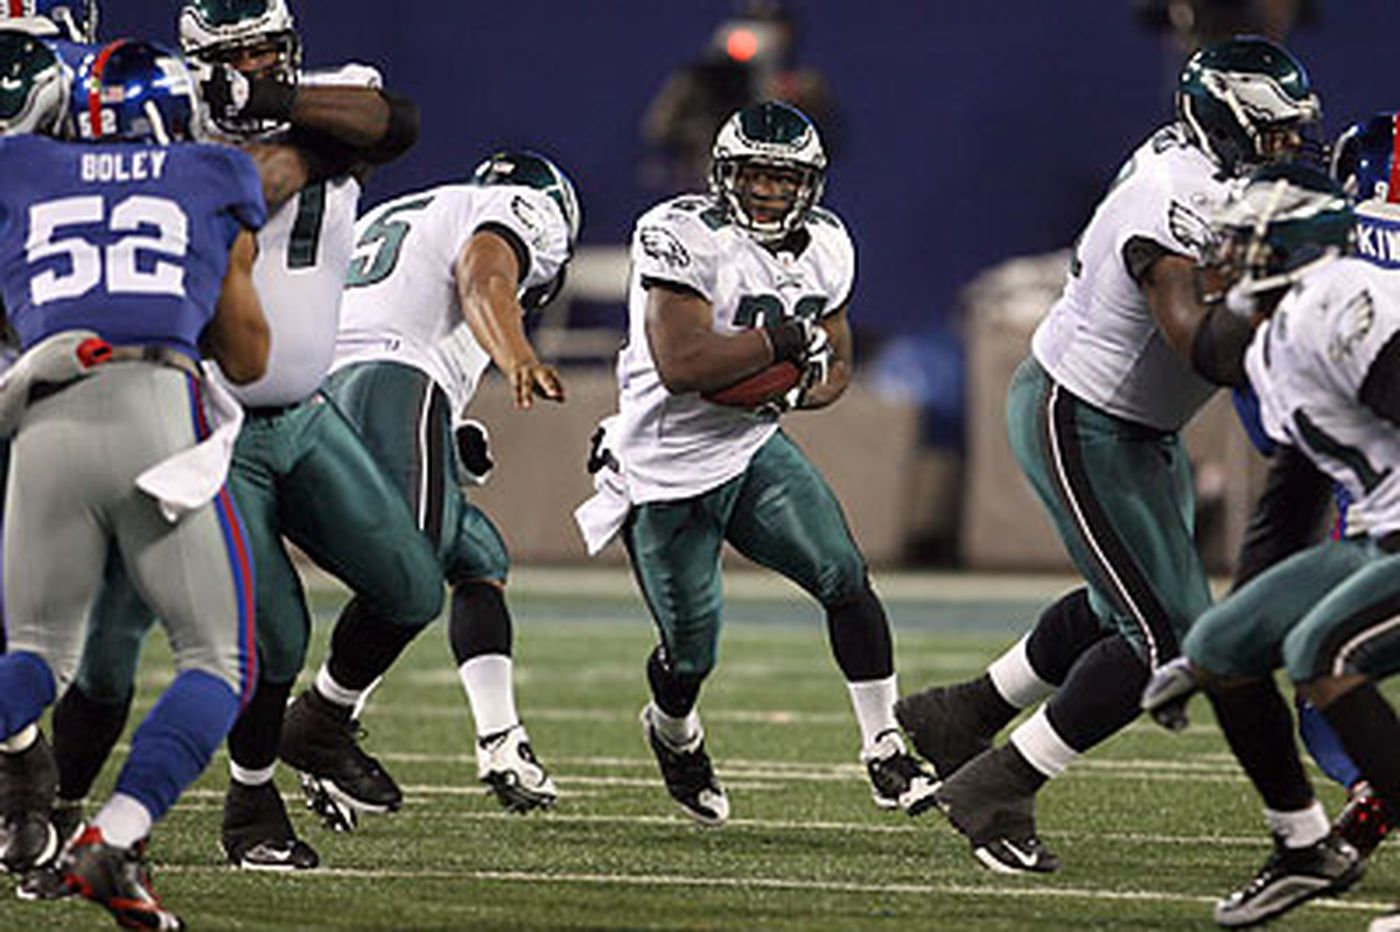 Paul Domowitch: Eagles' offensive line overcomes adversity